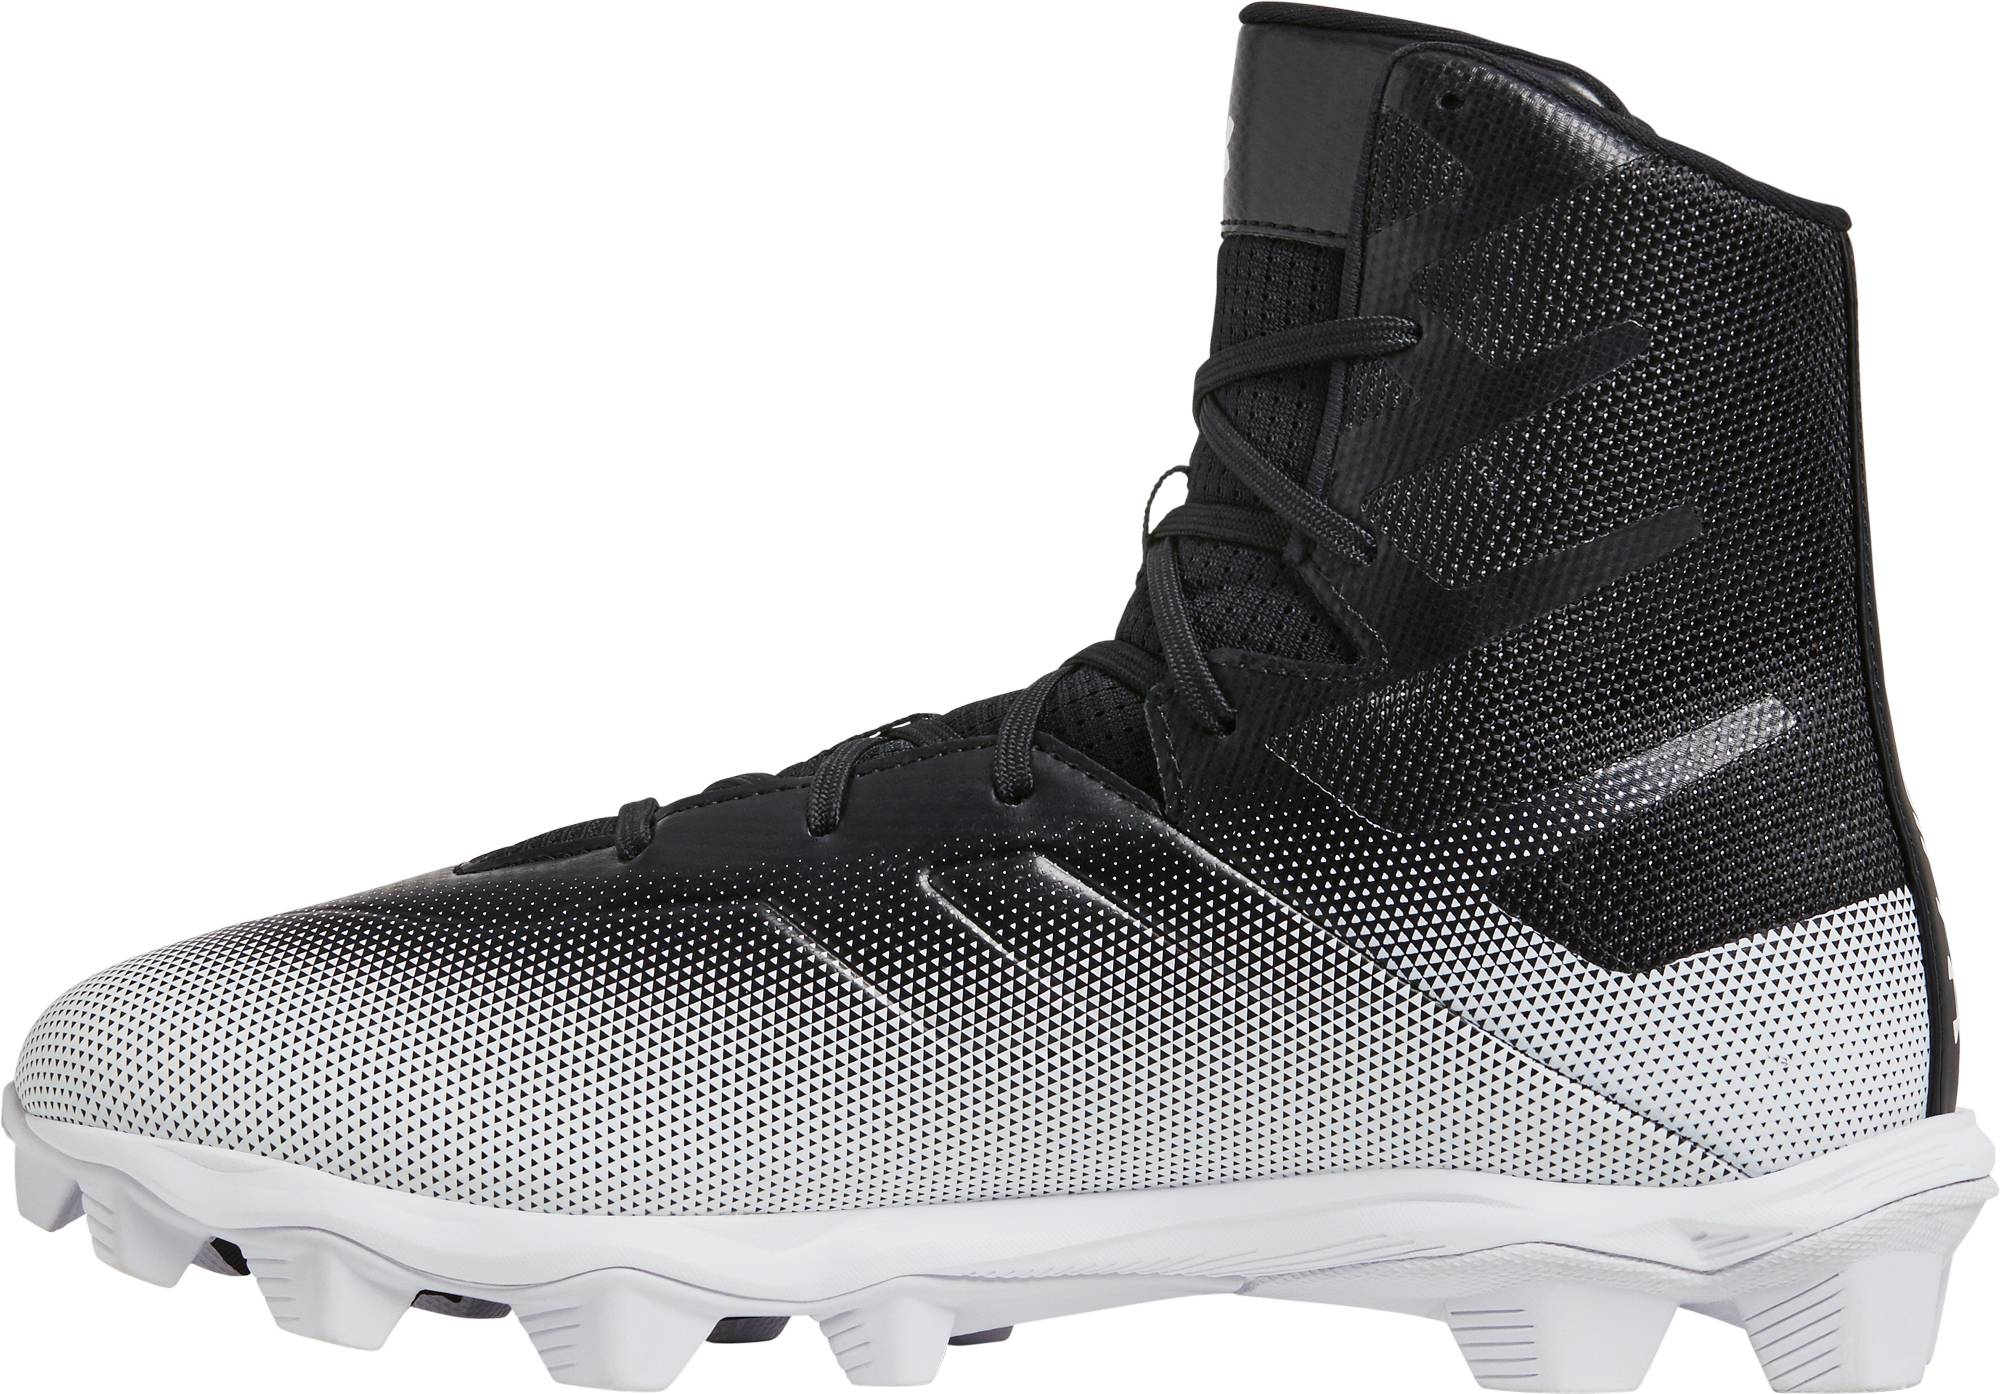 abeda6326a Under Armour Highlight RM Men's Football Cleats